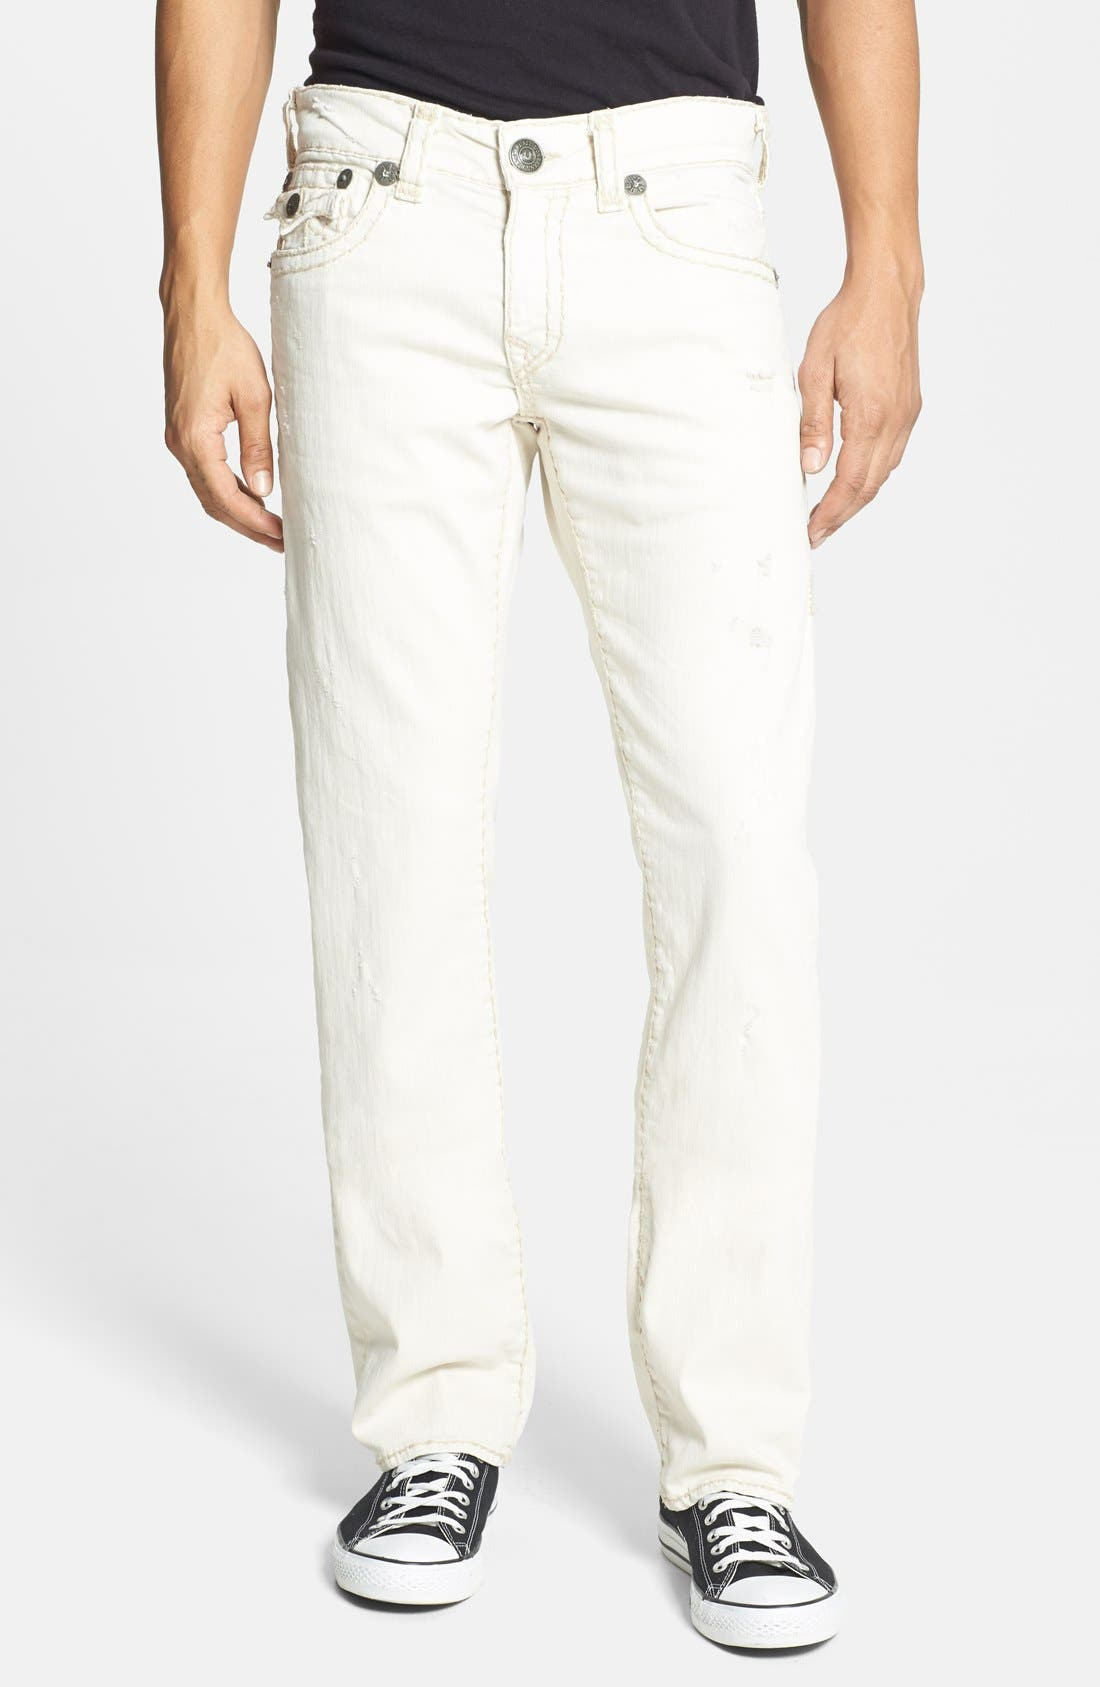 Alternate Image 2  - True Religion Brand Jeans 'Ricky' Relaxed Fit Jeans (Bak Joshua Tree)